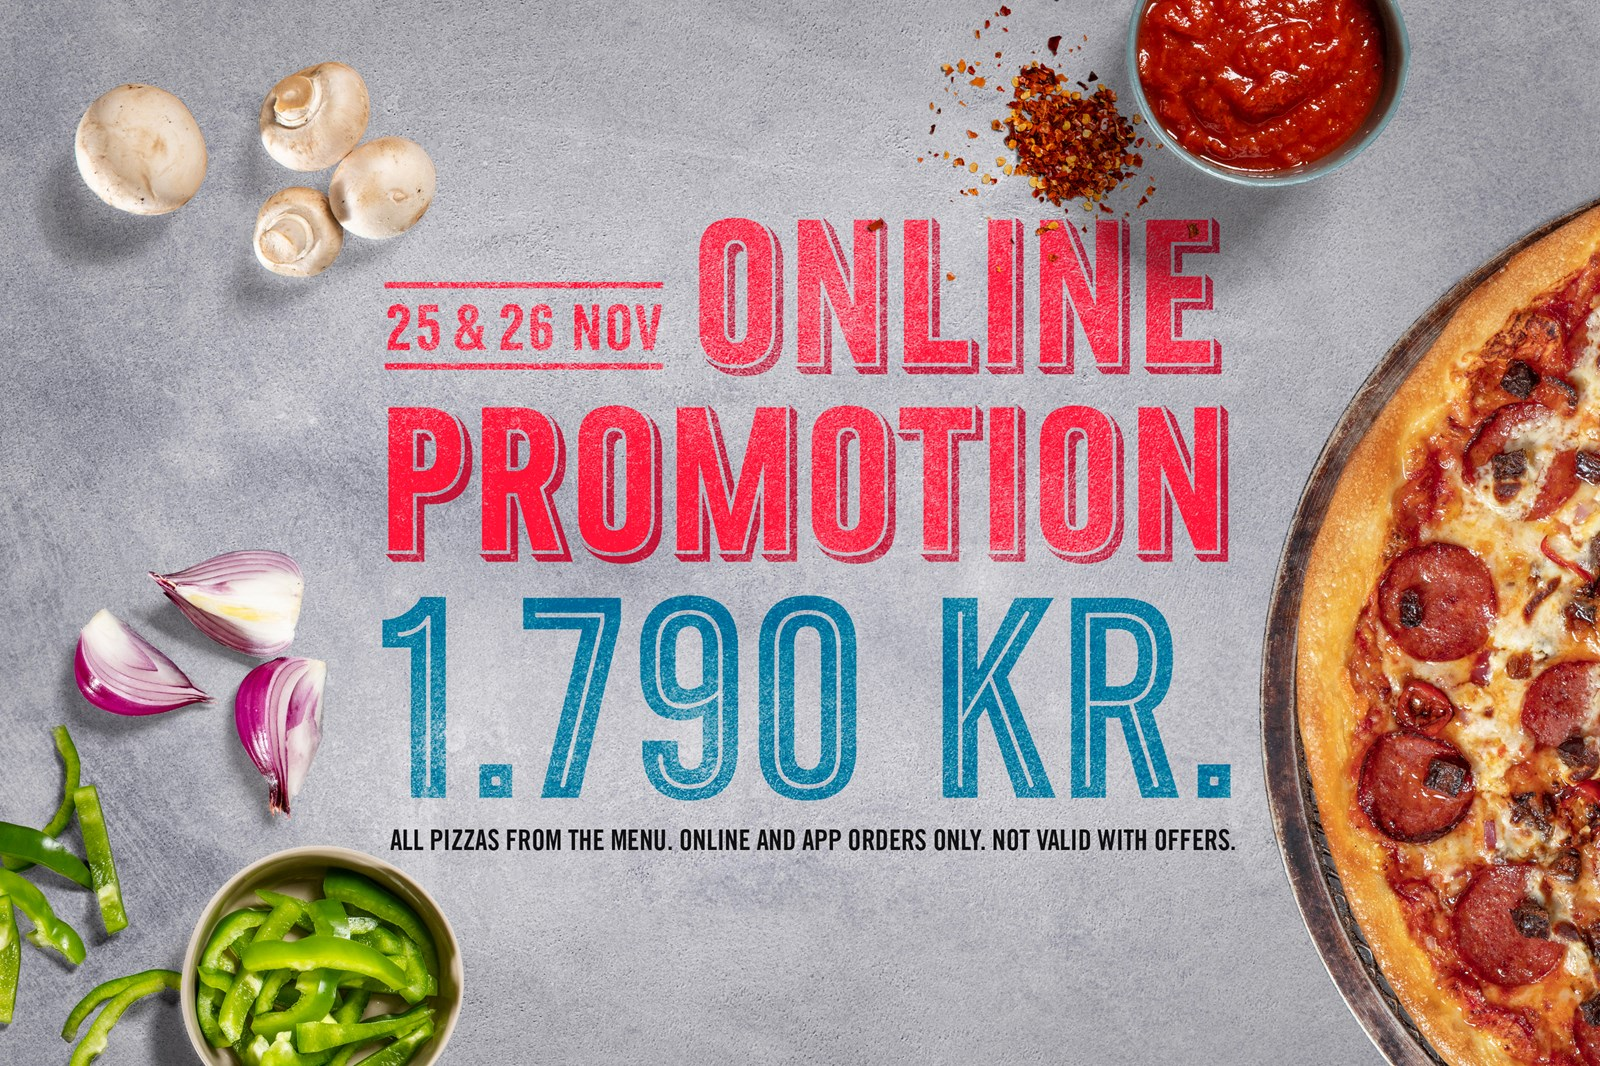 Online promotion. All pizzas from the menu for 1790 kr.